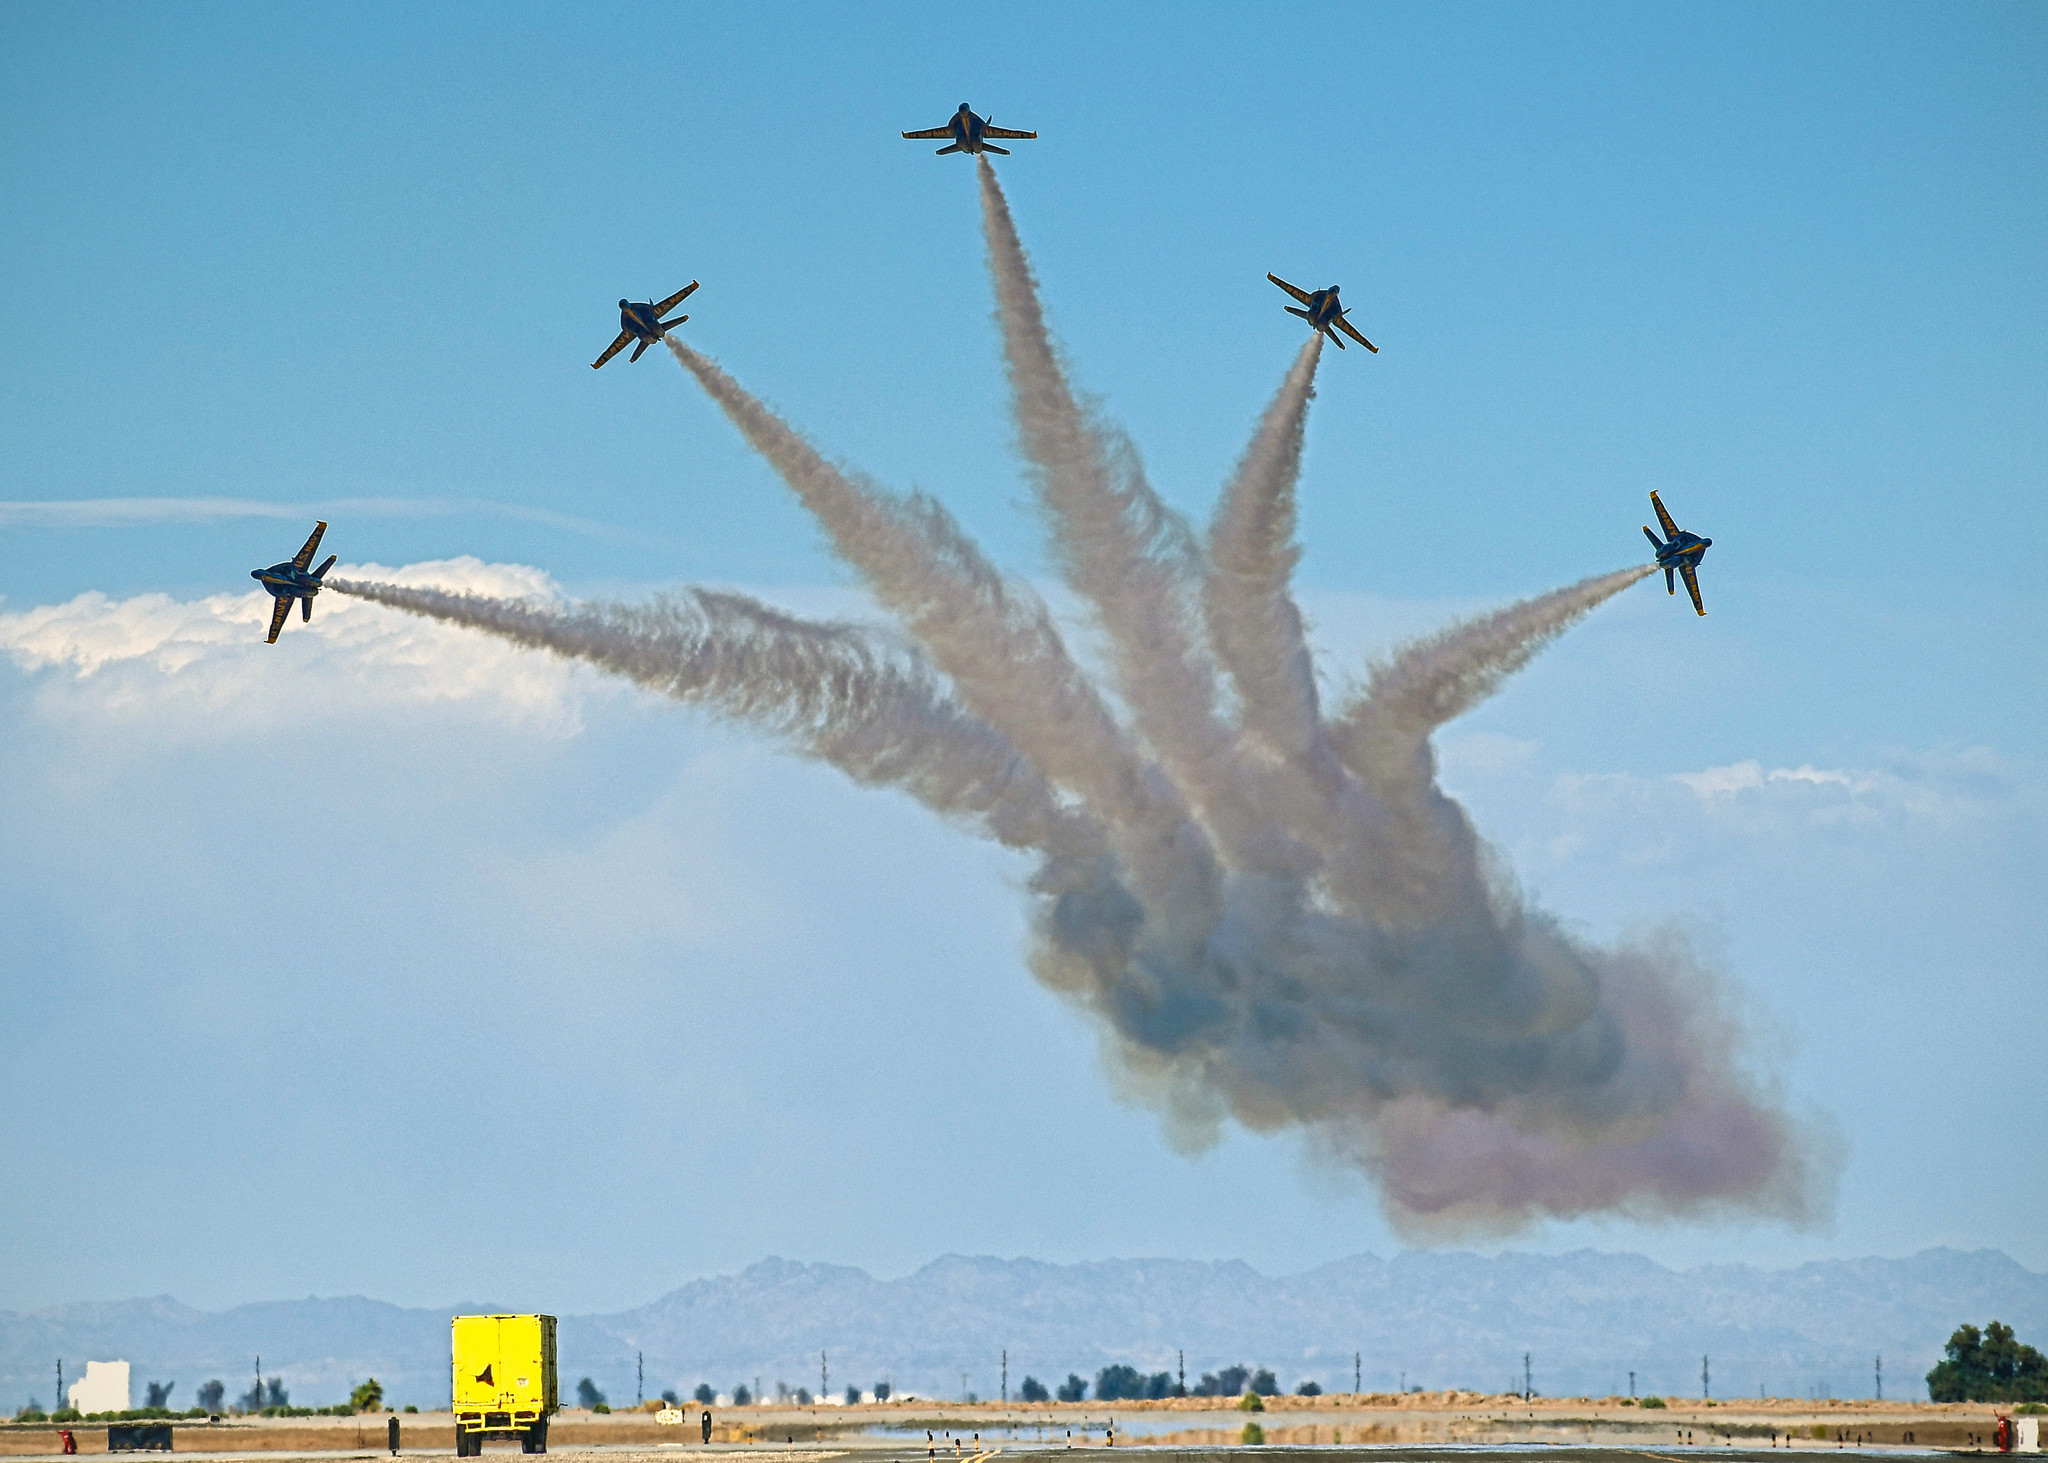 The U.S. Navy Flight Demonstration Squadron, the Blue Angels, complete their winter training at the conclusion of the Festival of Flight, at Naval Air Facility (NAF) El Centro, Calif., March 13, 2021. (MC3 Drew Verbis/Navy)